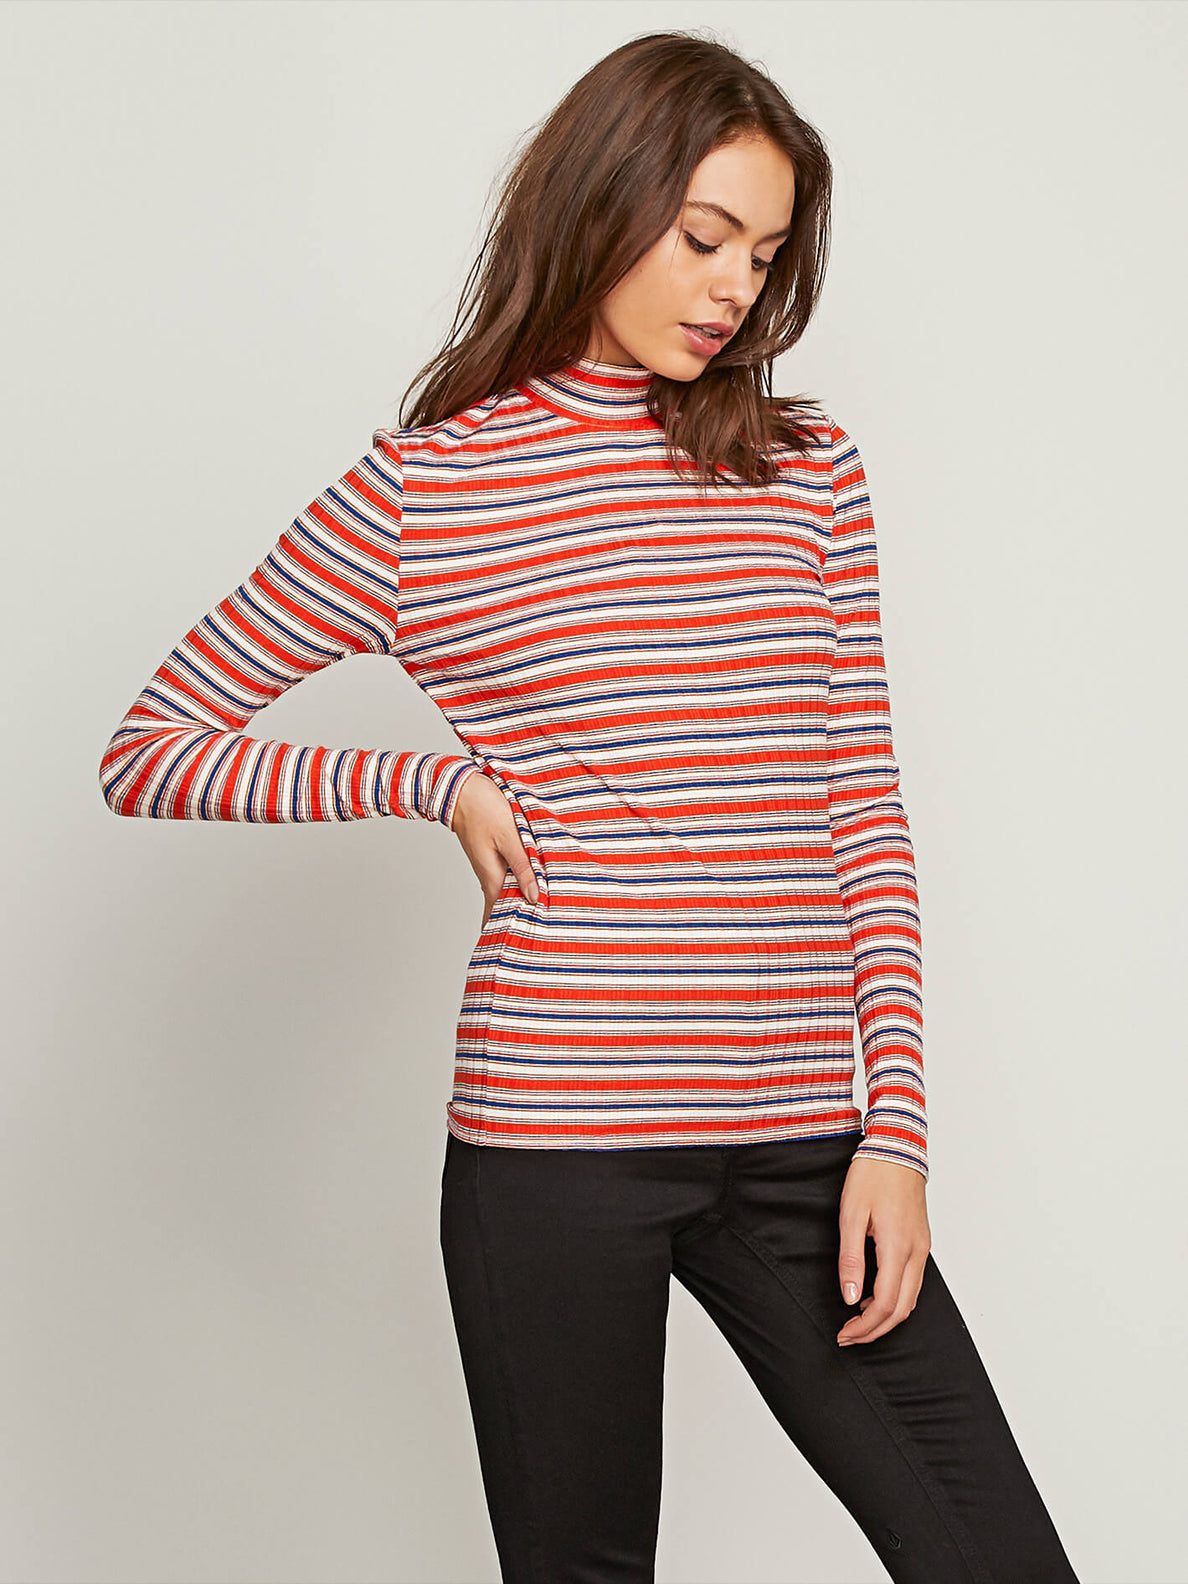 Tail Slide Long Sleeve Top In Tangerine, Alternate View